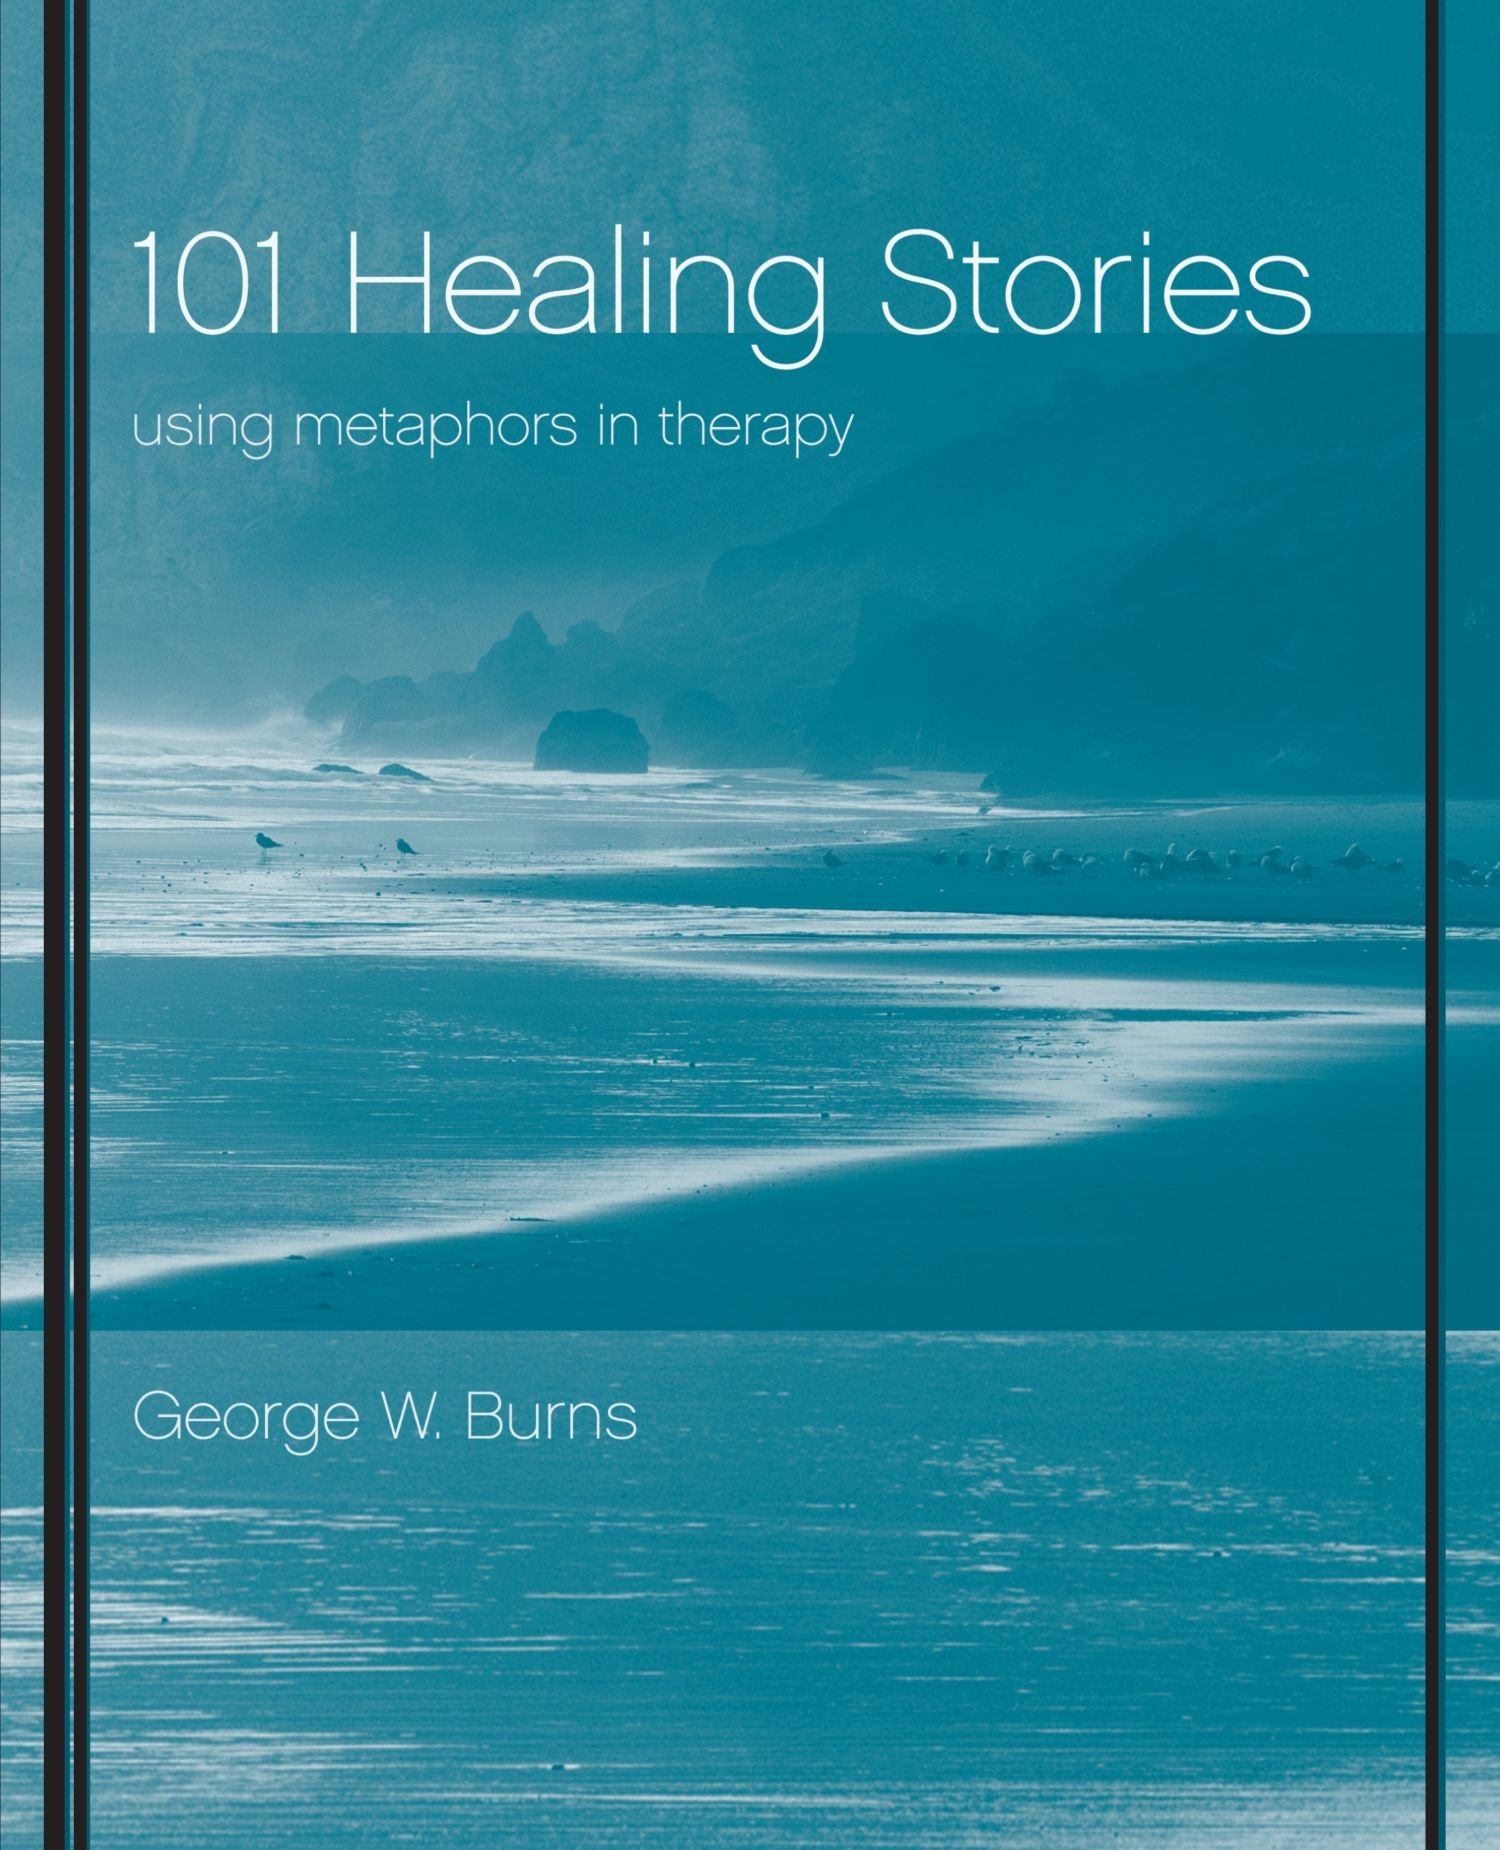 101 Healing Stories: Using Metaphors in Therapy: Amazon.co.uk: George W.  Burns: 9780471395898: Books